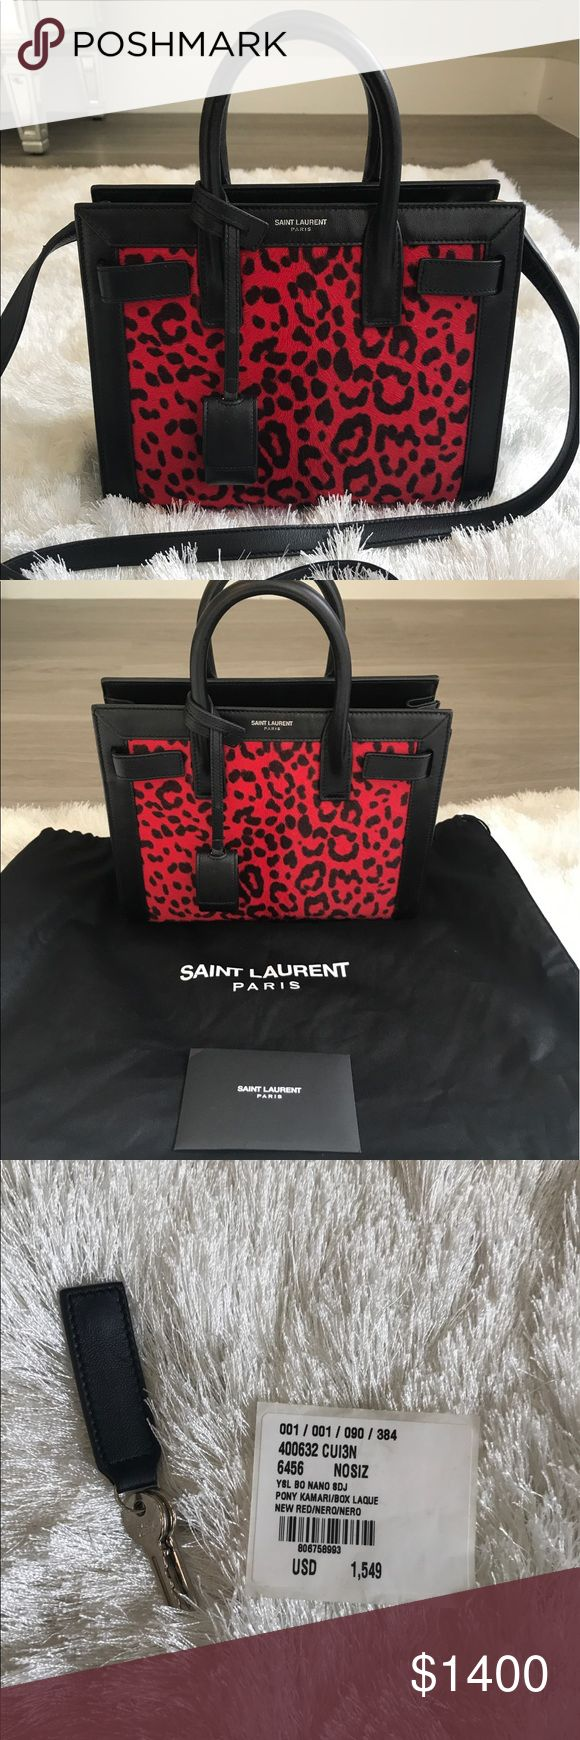 YSL Nano Sac De Jour! ❤️ Gorgeous authentic Saint Laurent nano bag in bright red and black print! Only used a handful of times. Comes with dust bag, authenticity card, and keys for the lock. No trades. Yves Saint Laurent Bags Mini Bags